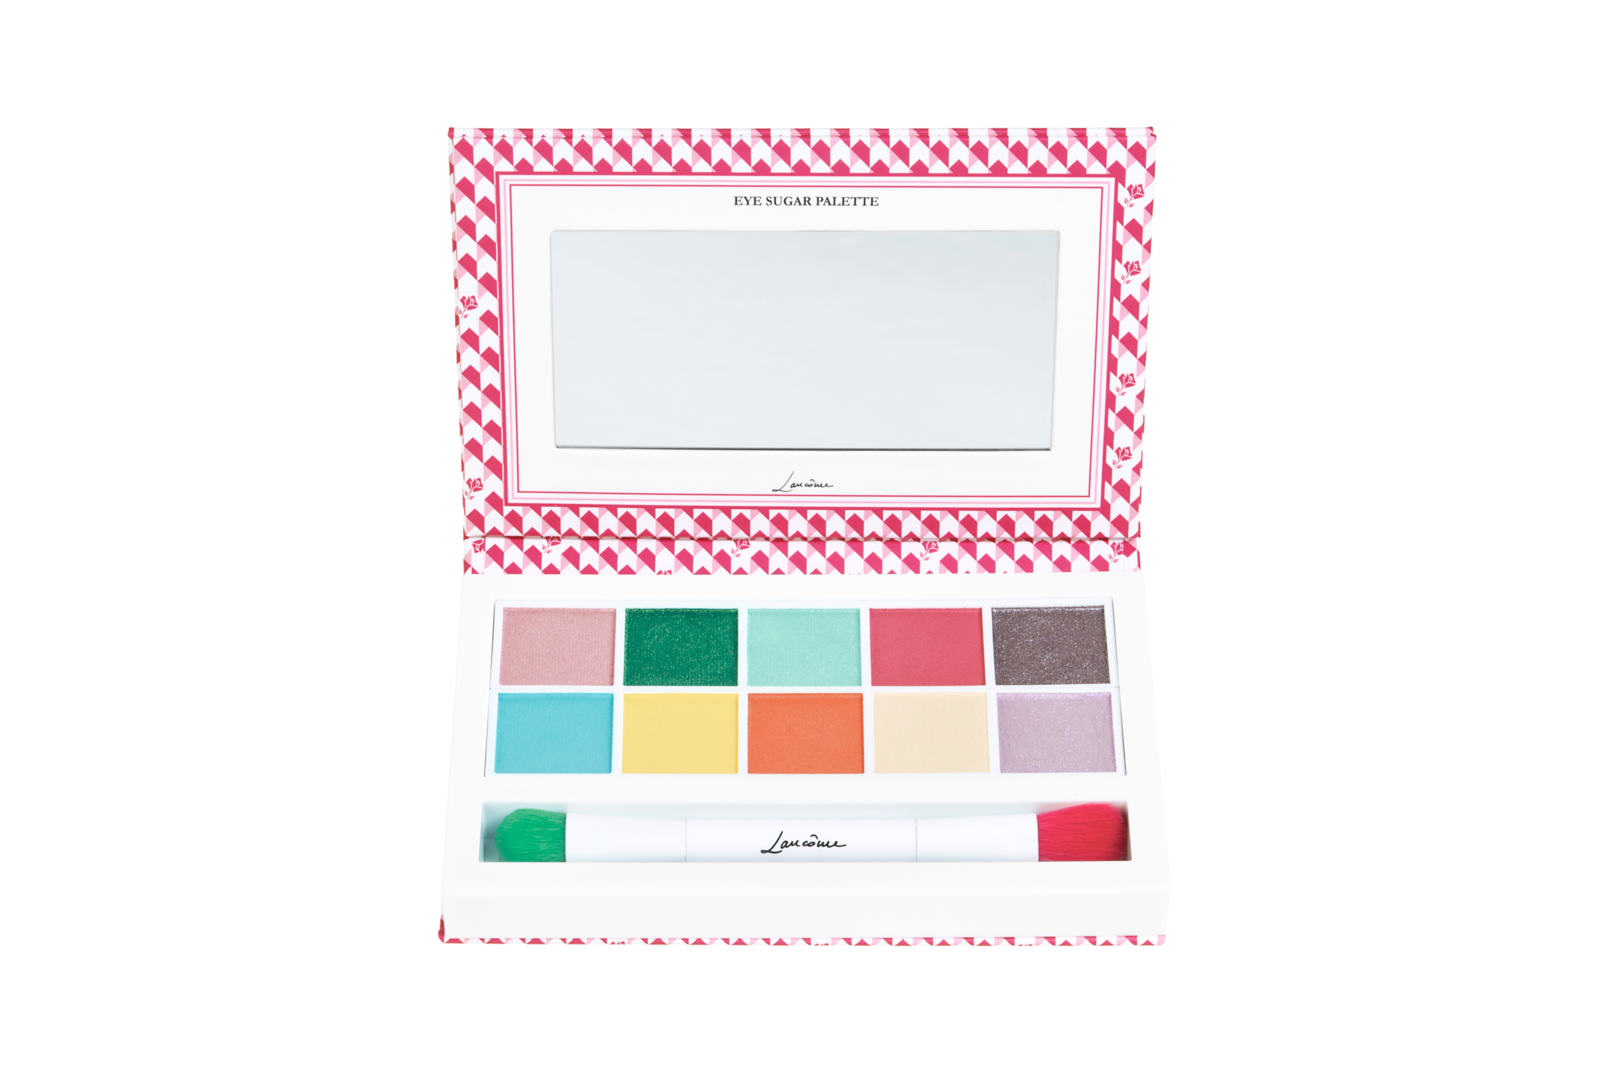 Eye Sugar Palette Palette